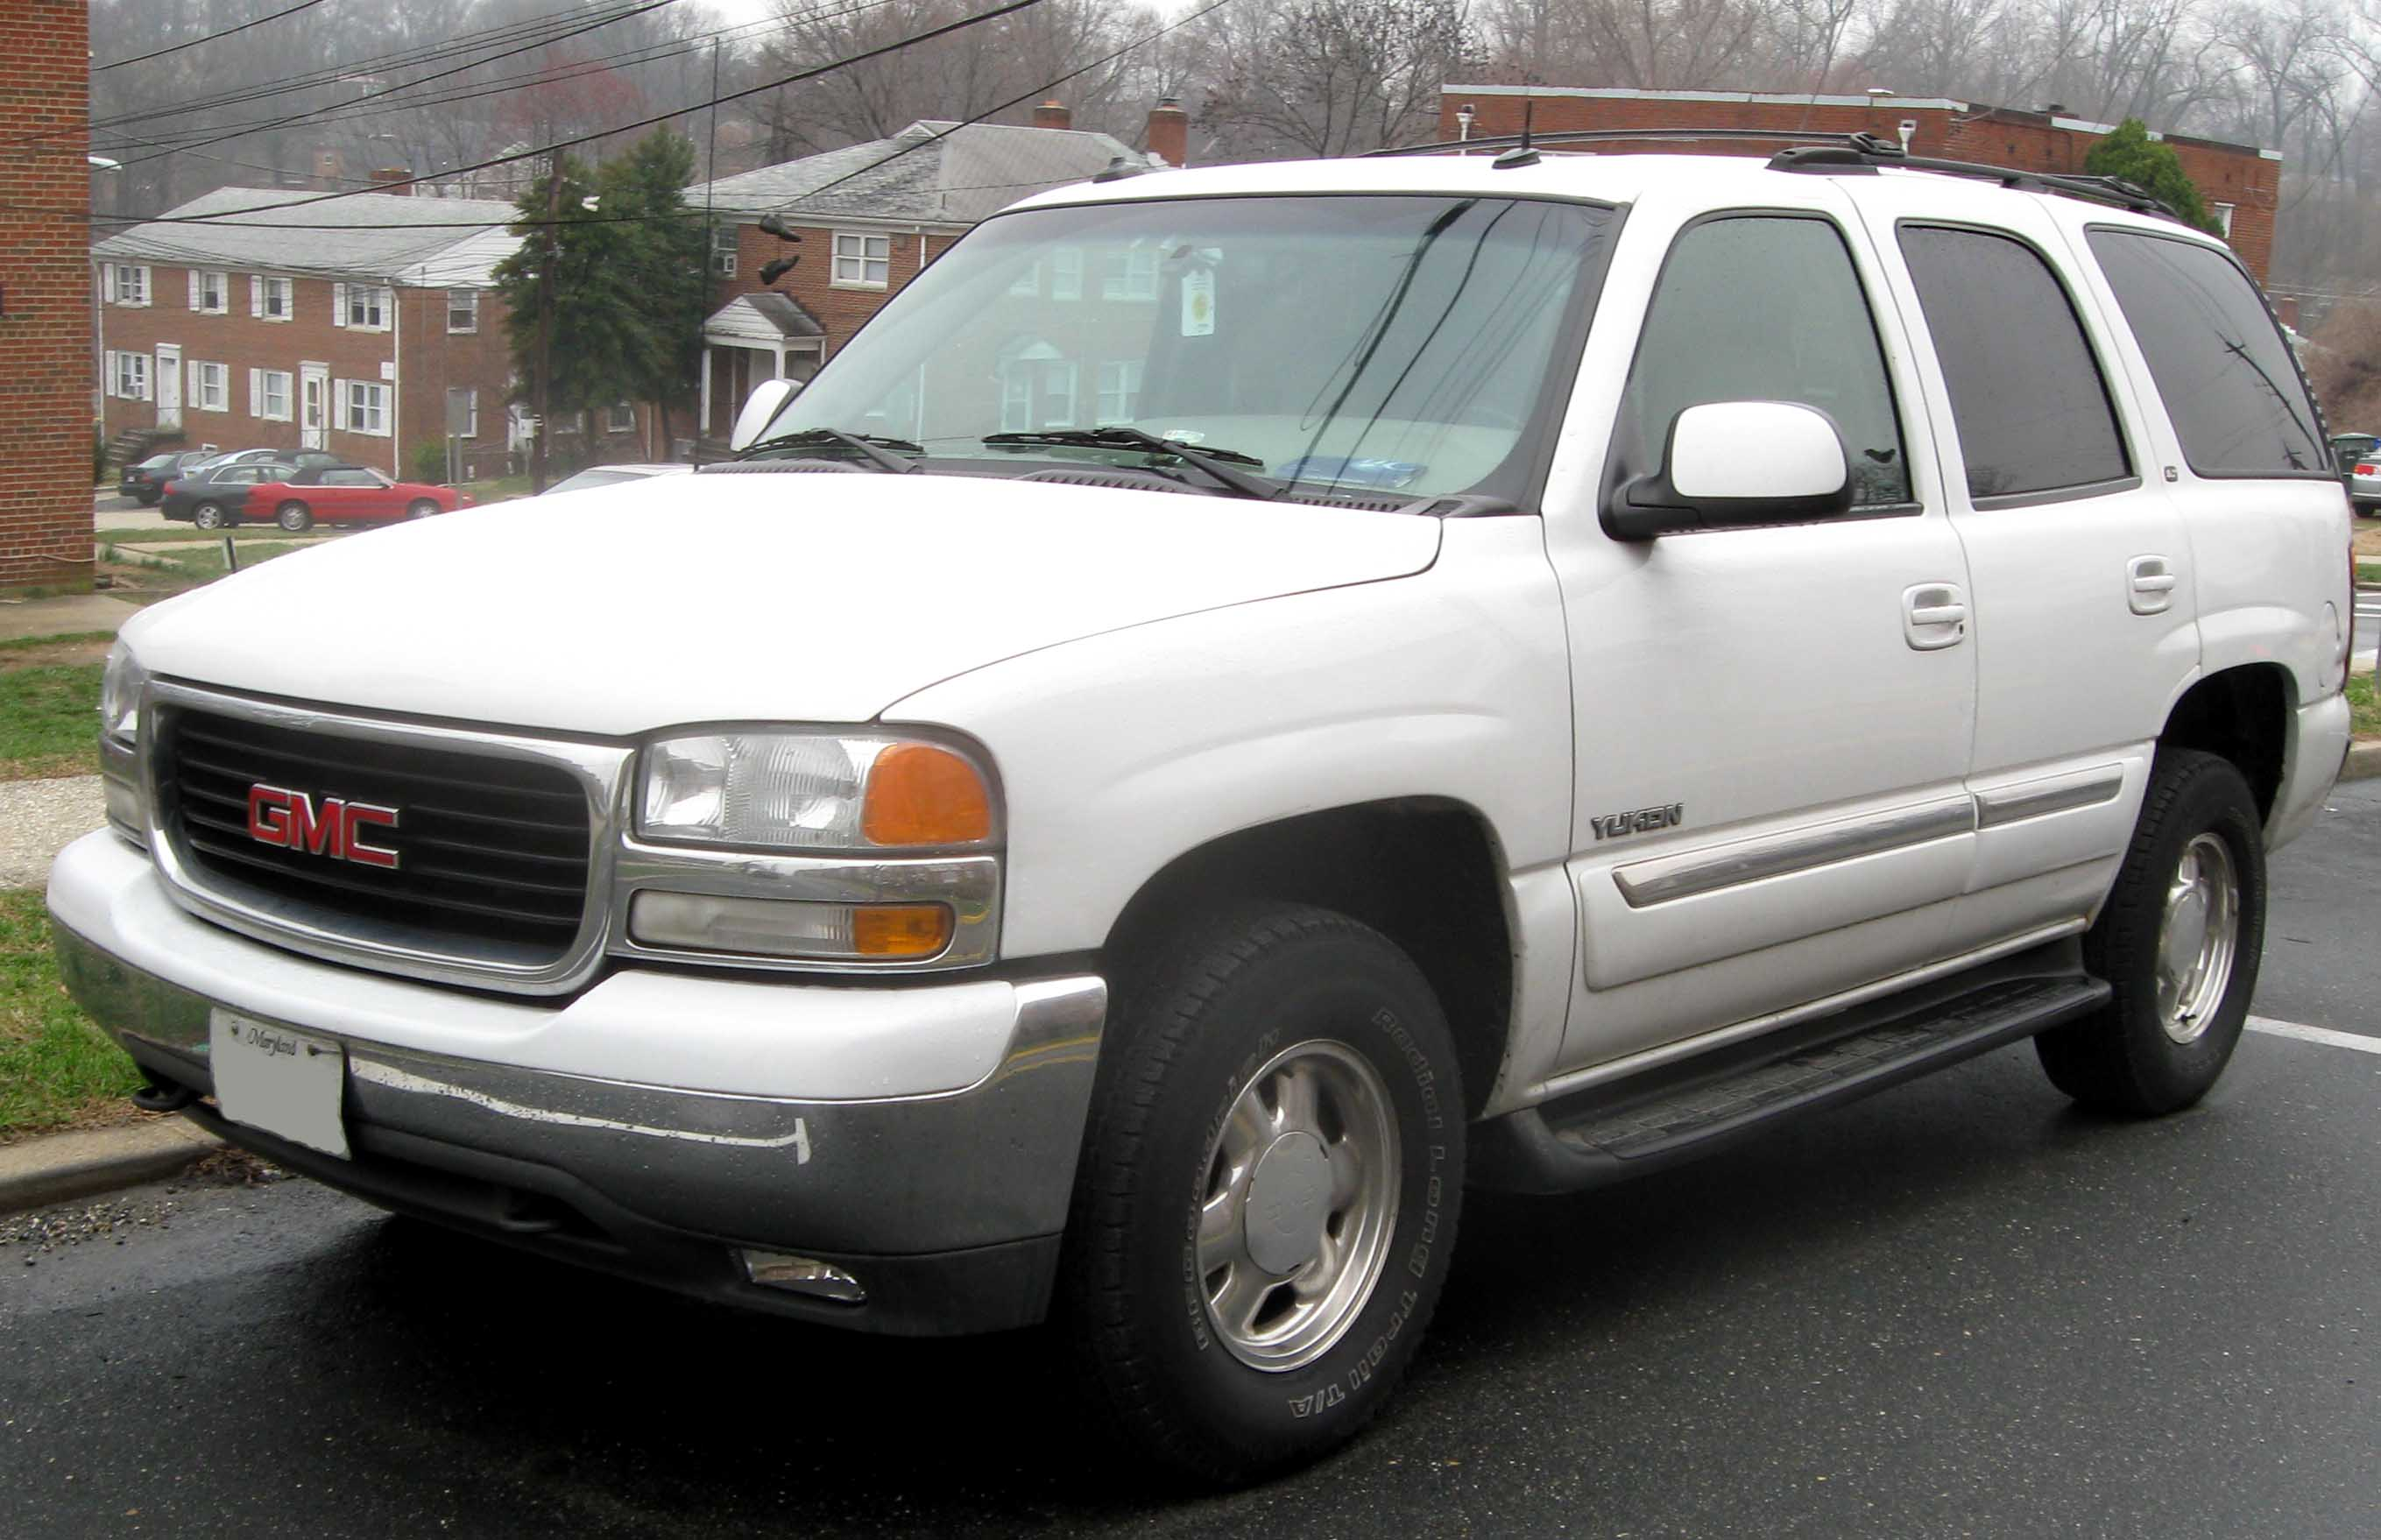 2000 gmc yukon gmt800 pictures information and specs auto. Black Bedroom Furniture Sets. Home Design Ideas